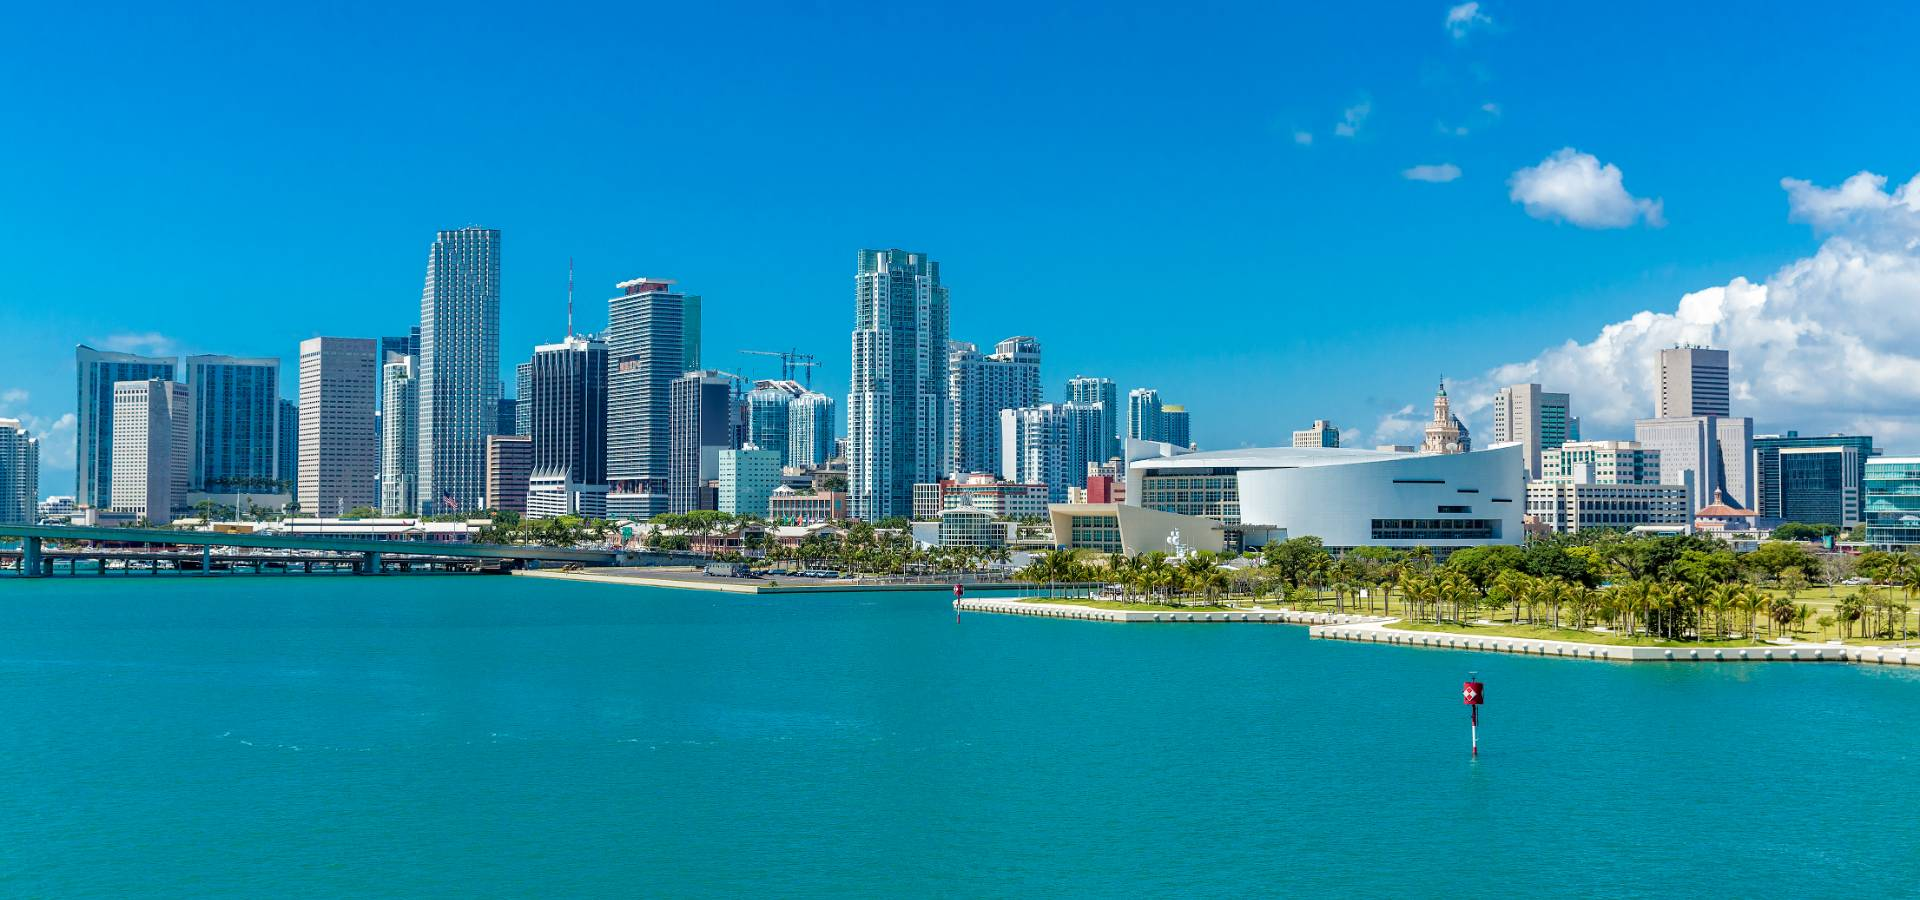 Best Things to do in South Beach Miami Florida